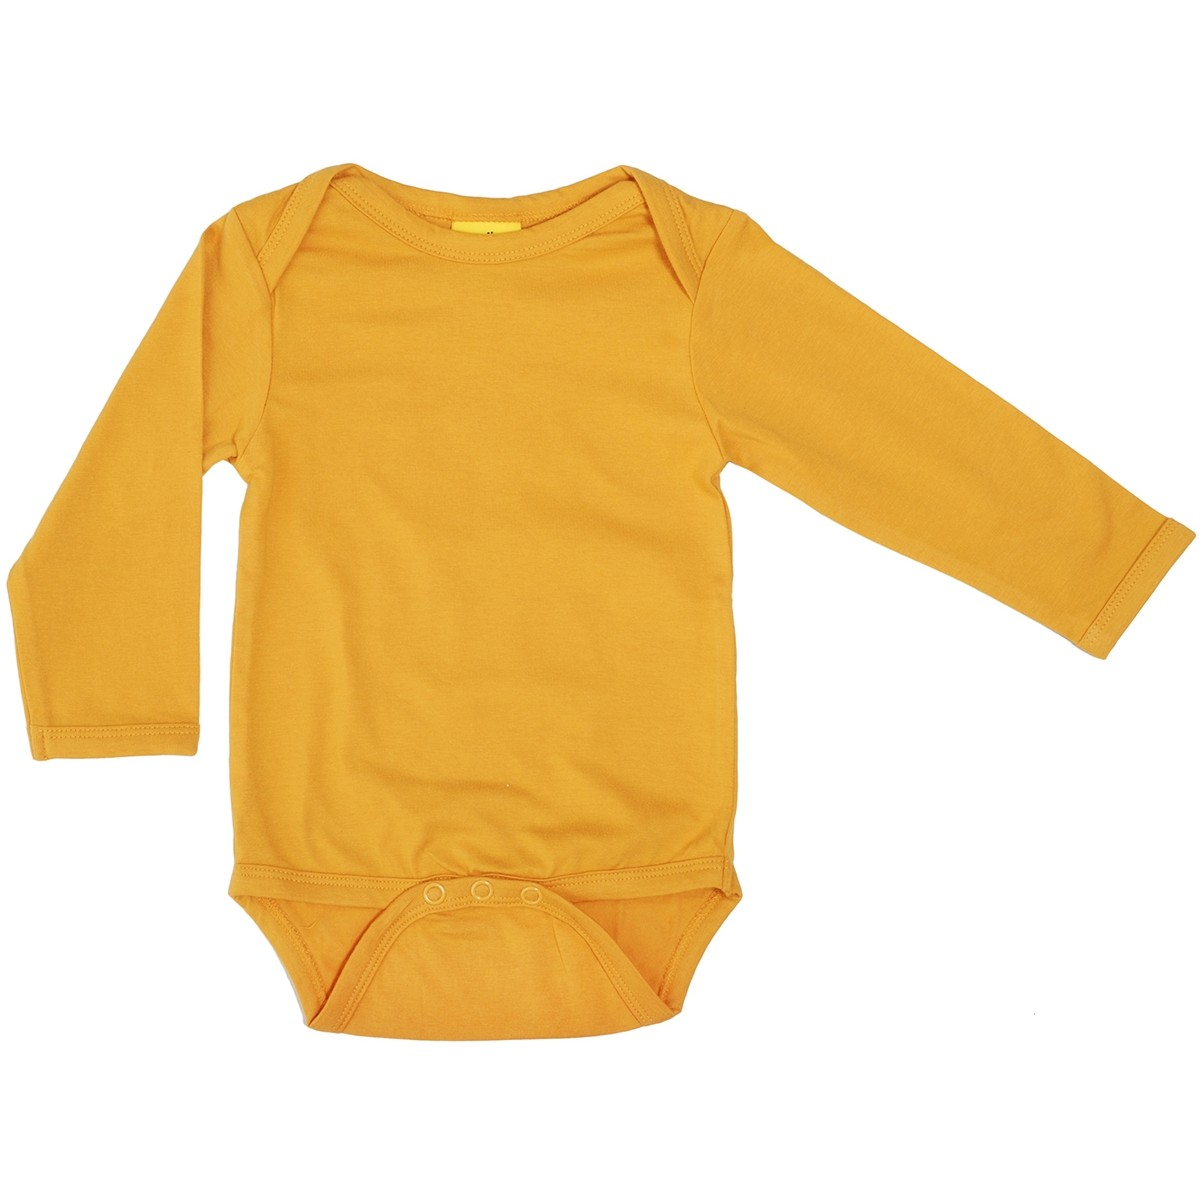 Duns Mustard Ls Body Baby Vests Bodies Organic Baby Clothes